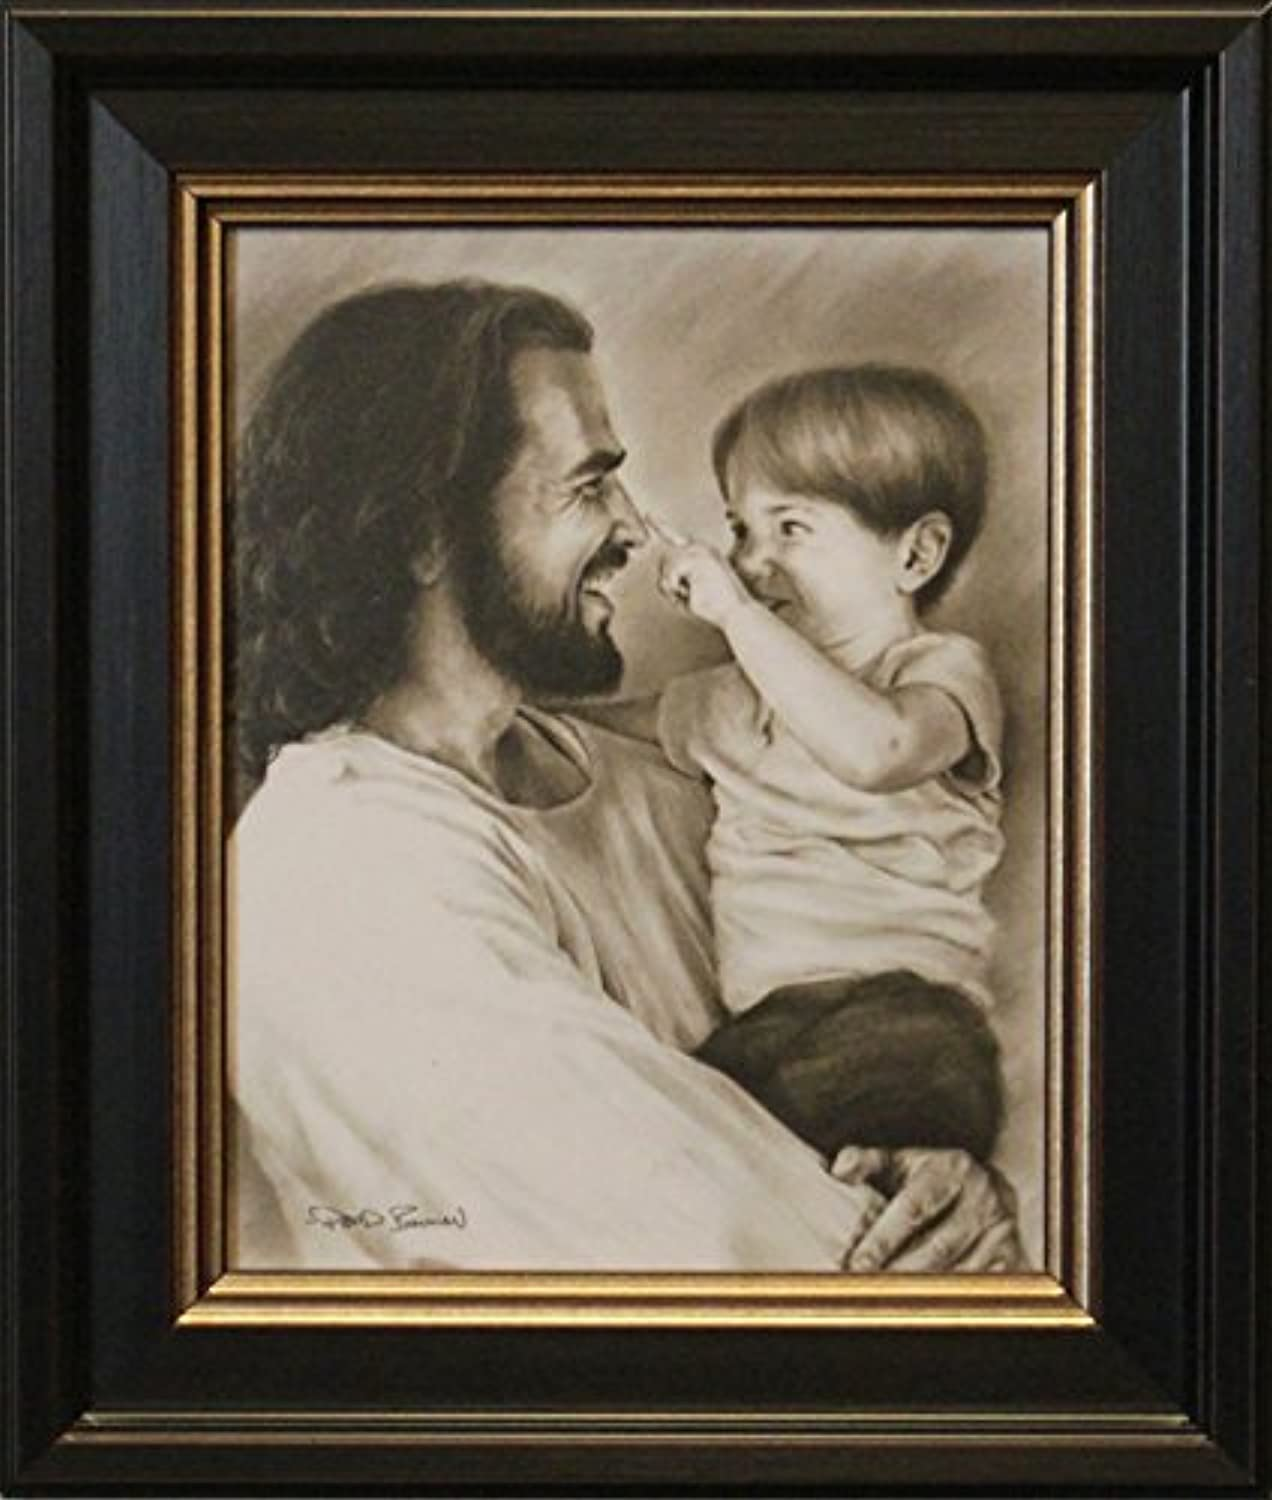 Artaccents Framed Picture of Jesus holding Little Boy,Innocence by David Bowman